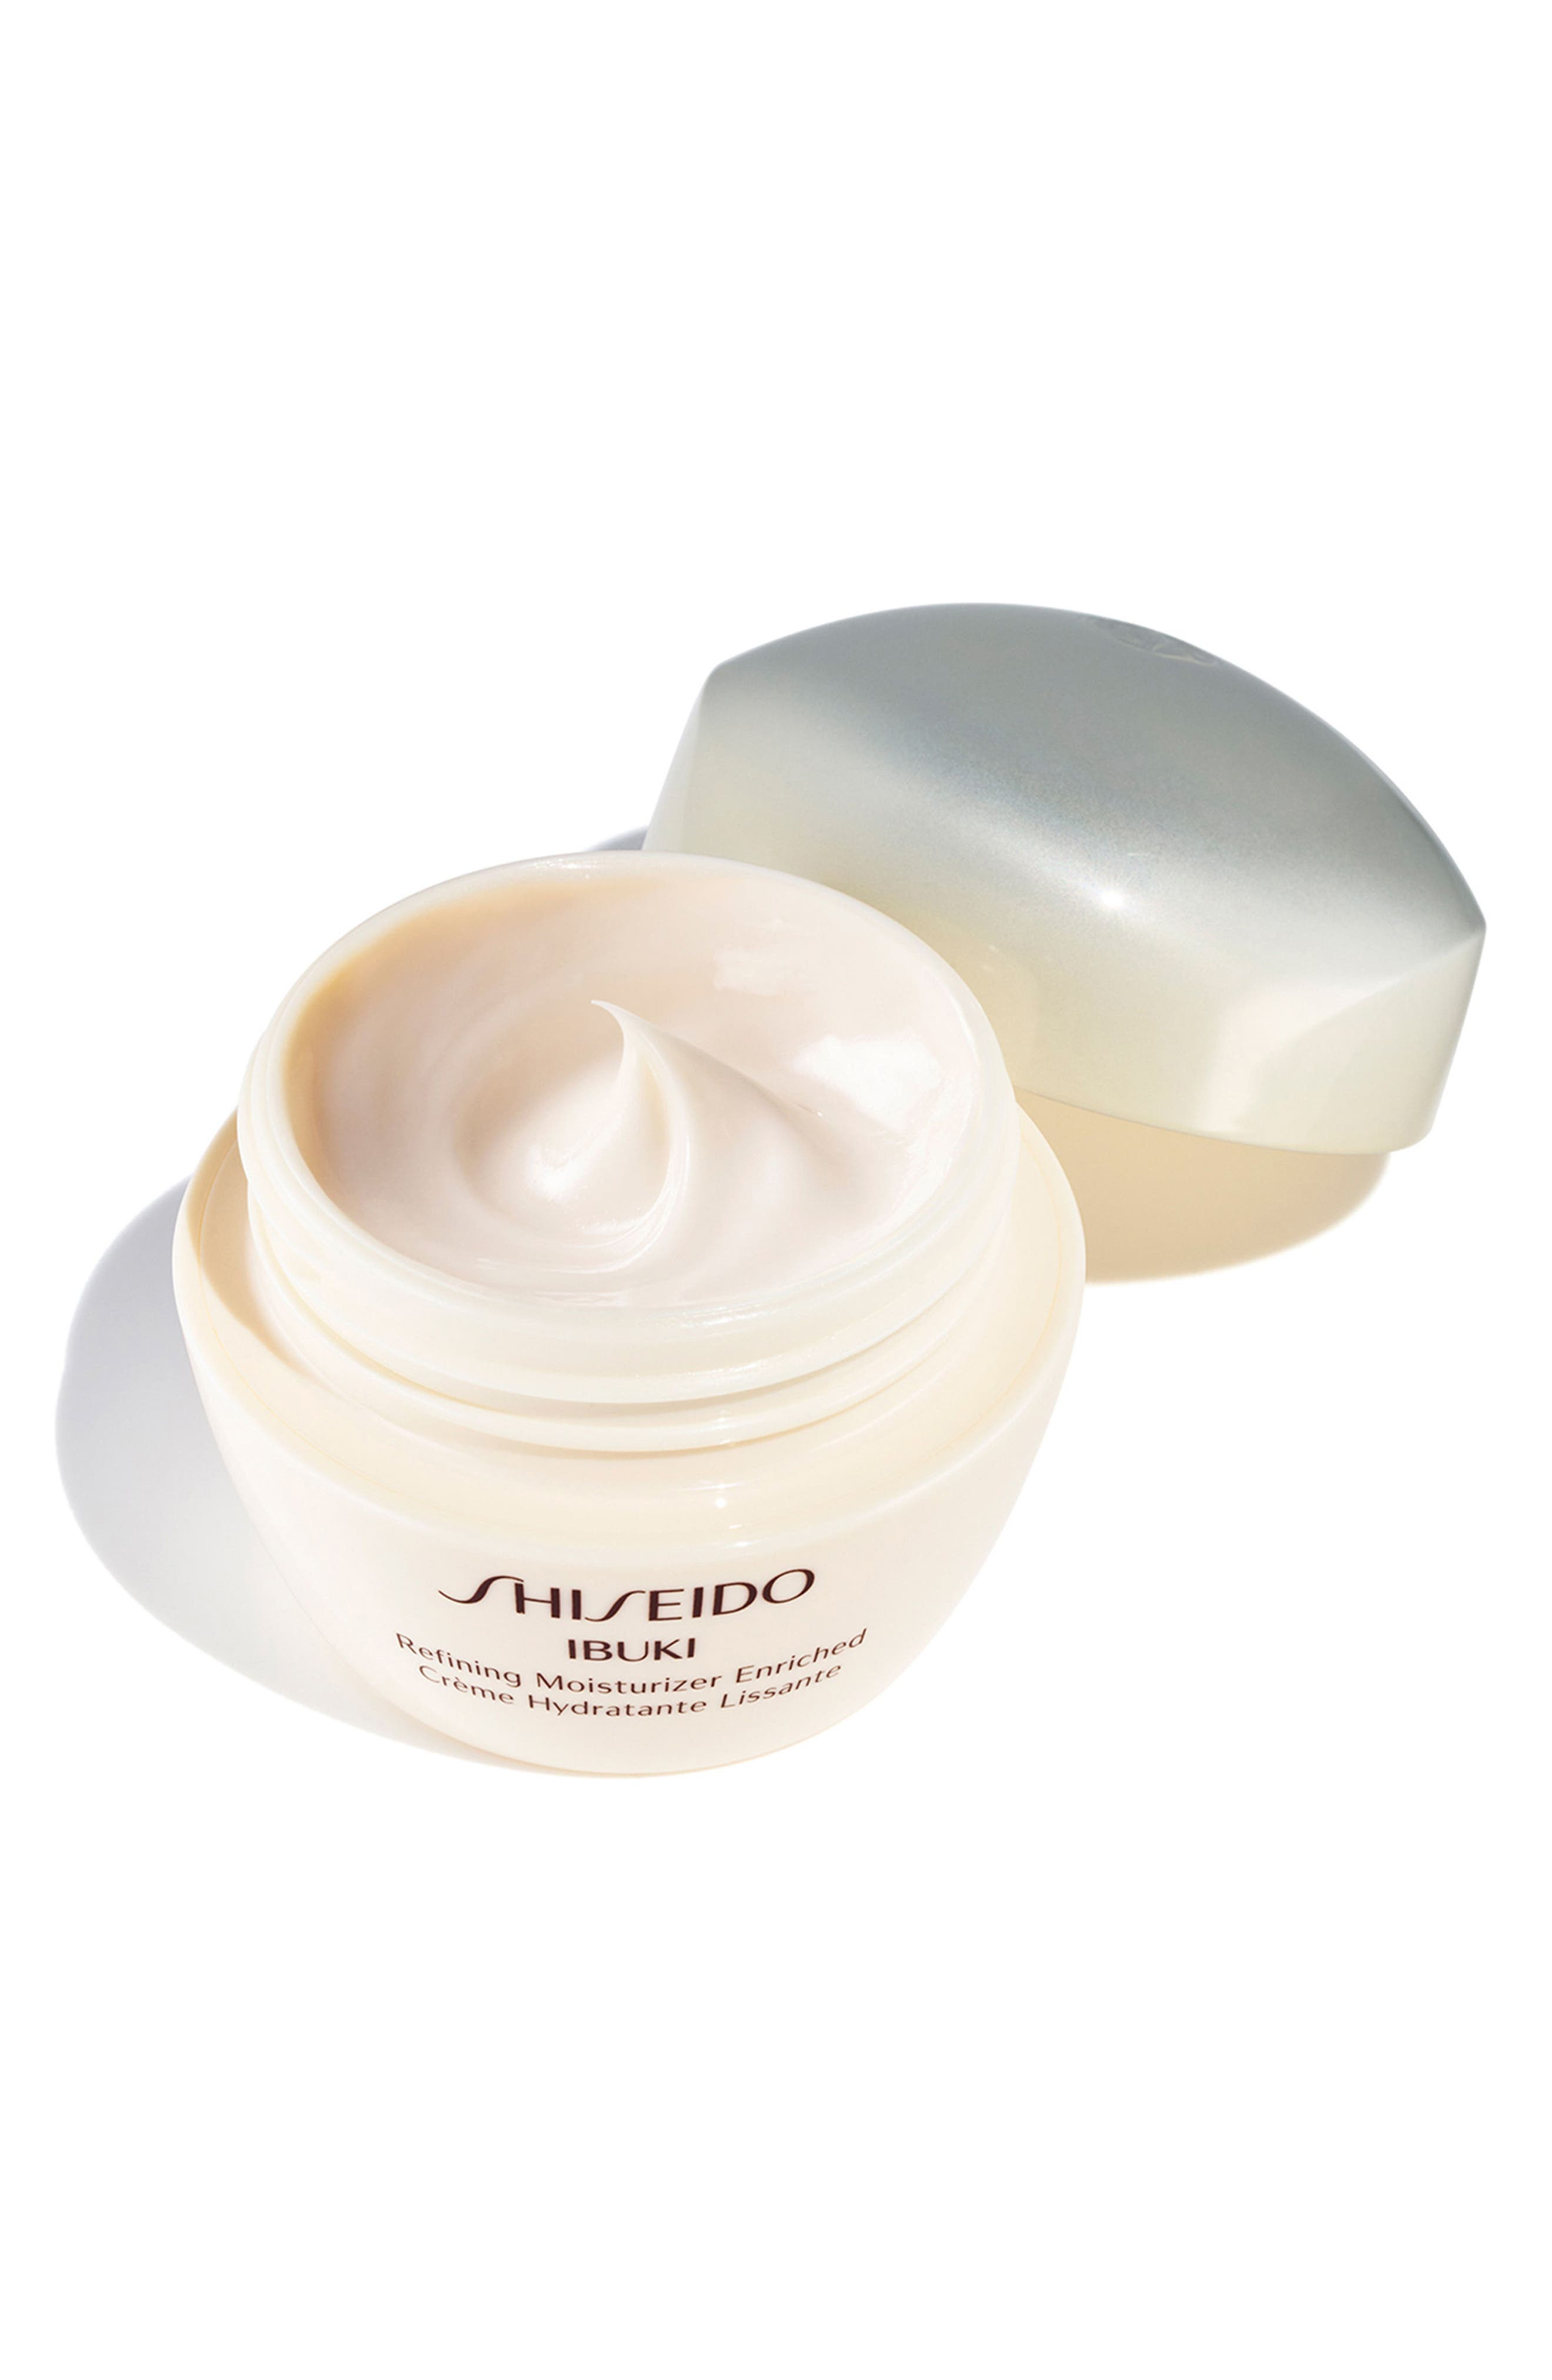 SHISEIDO,                             Ibuki Refining Moisturizer Enriched,                             Alternate thumbnail 2, color,                             NO COLOR